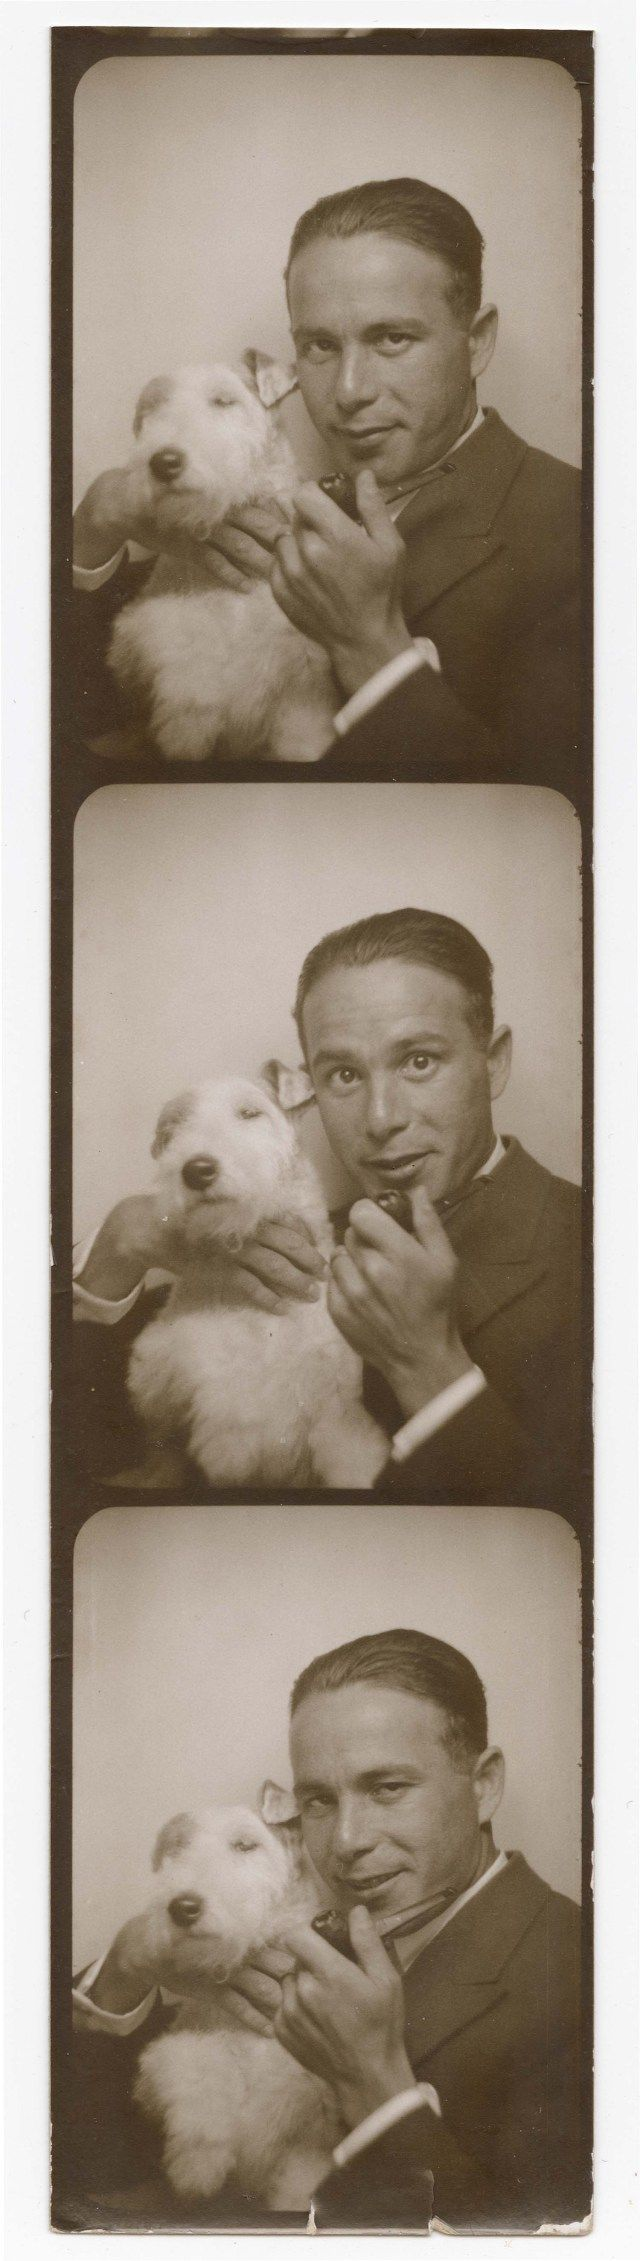 Inventor of the photobooth!! Anatol Josepho with a pipe and terrier, 1920s.